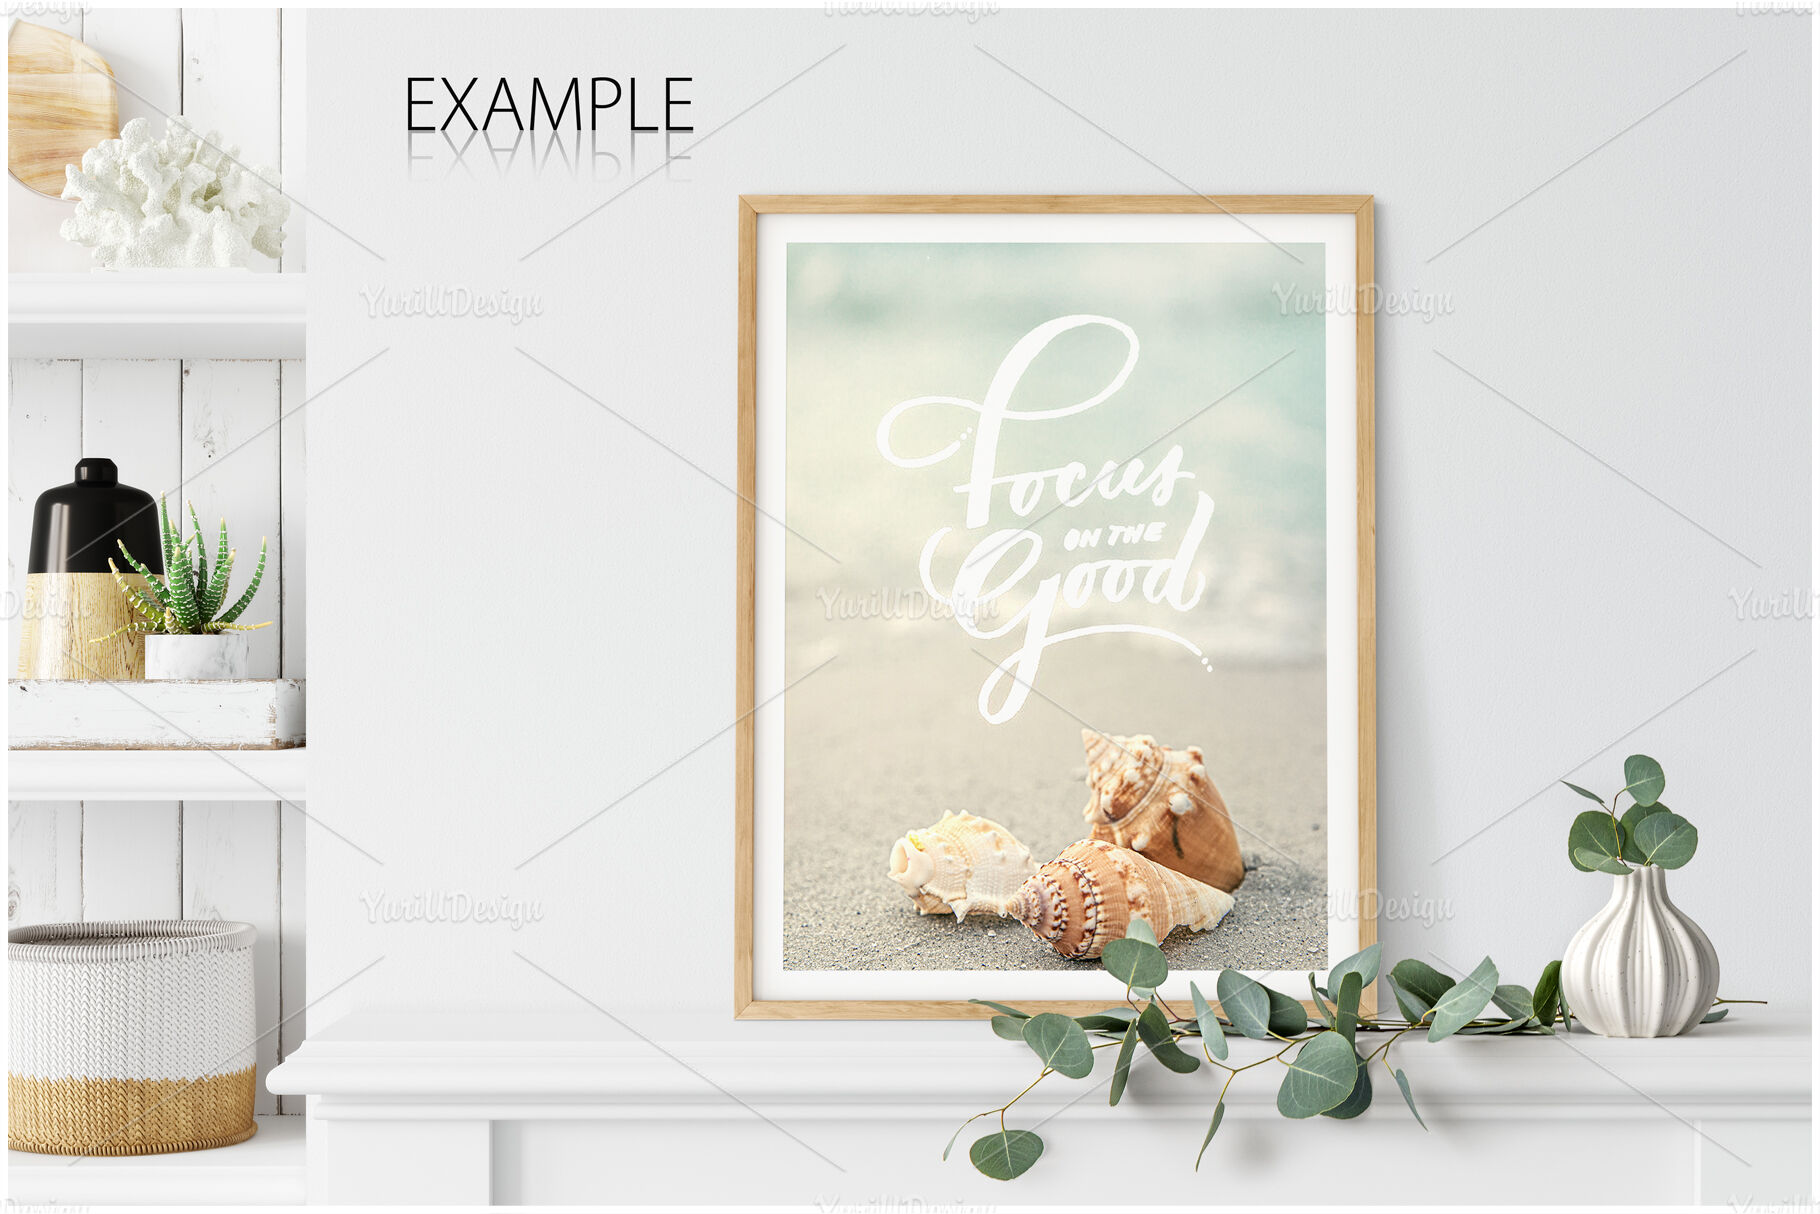 Download Wallpaper Roll Mockup Free Yellowimages